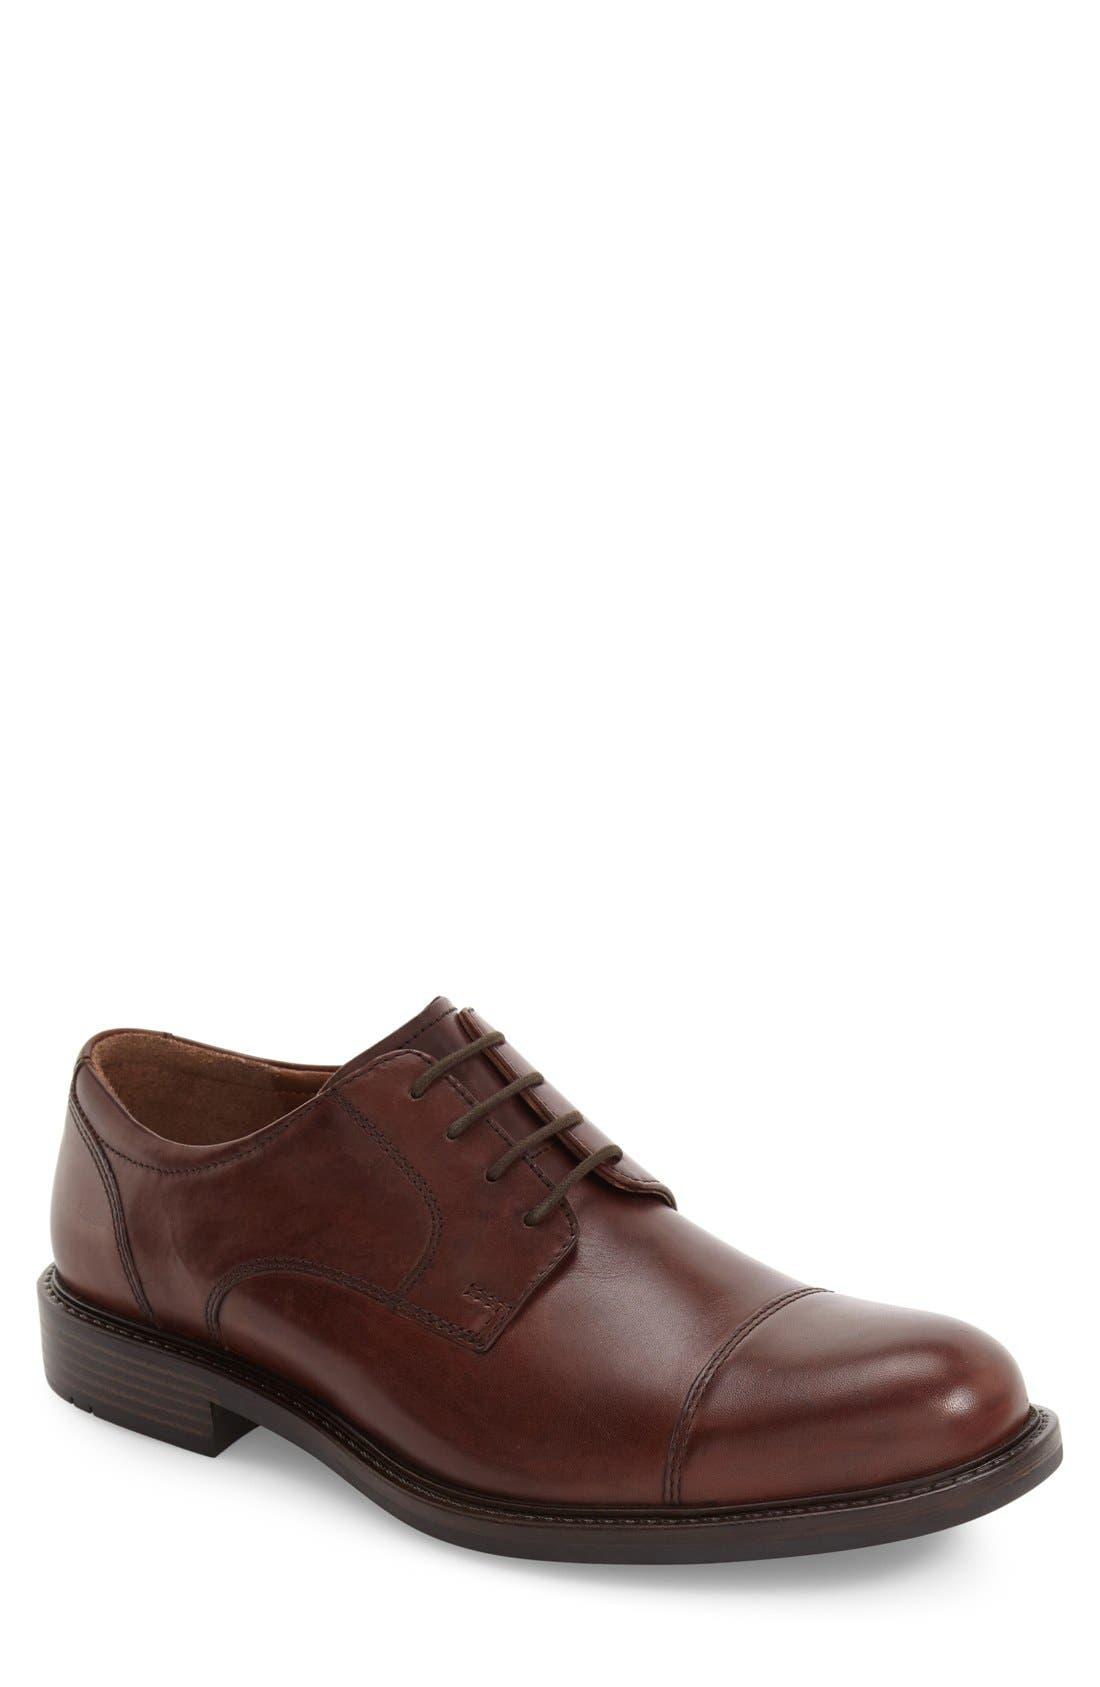 Tabor Cap Toe Derby,                         Main,                         color, Brown Leather